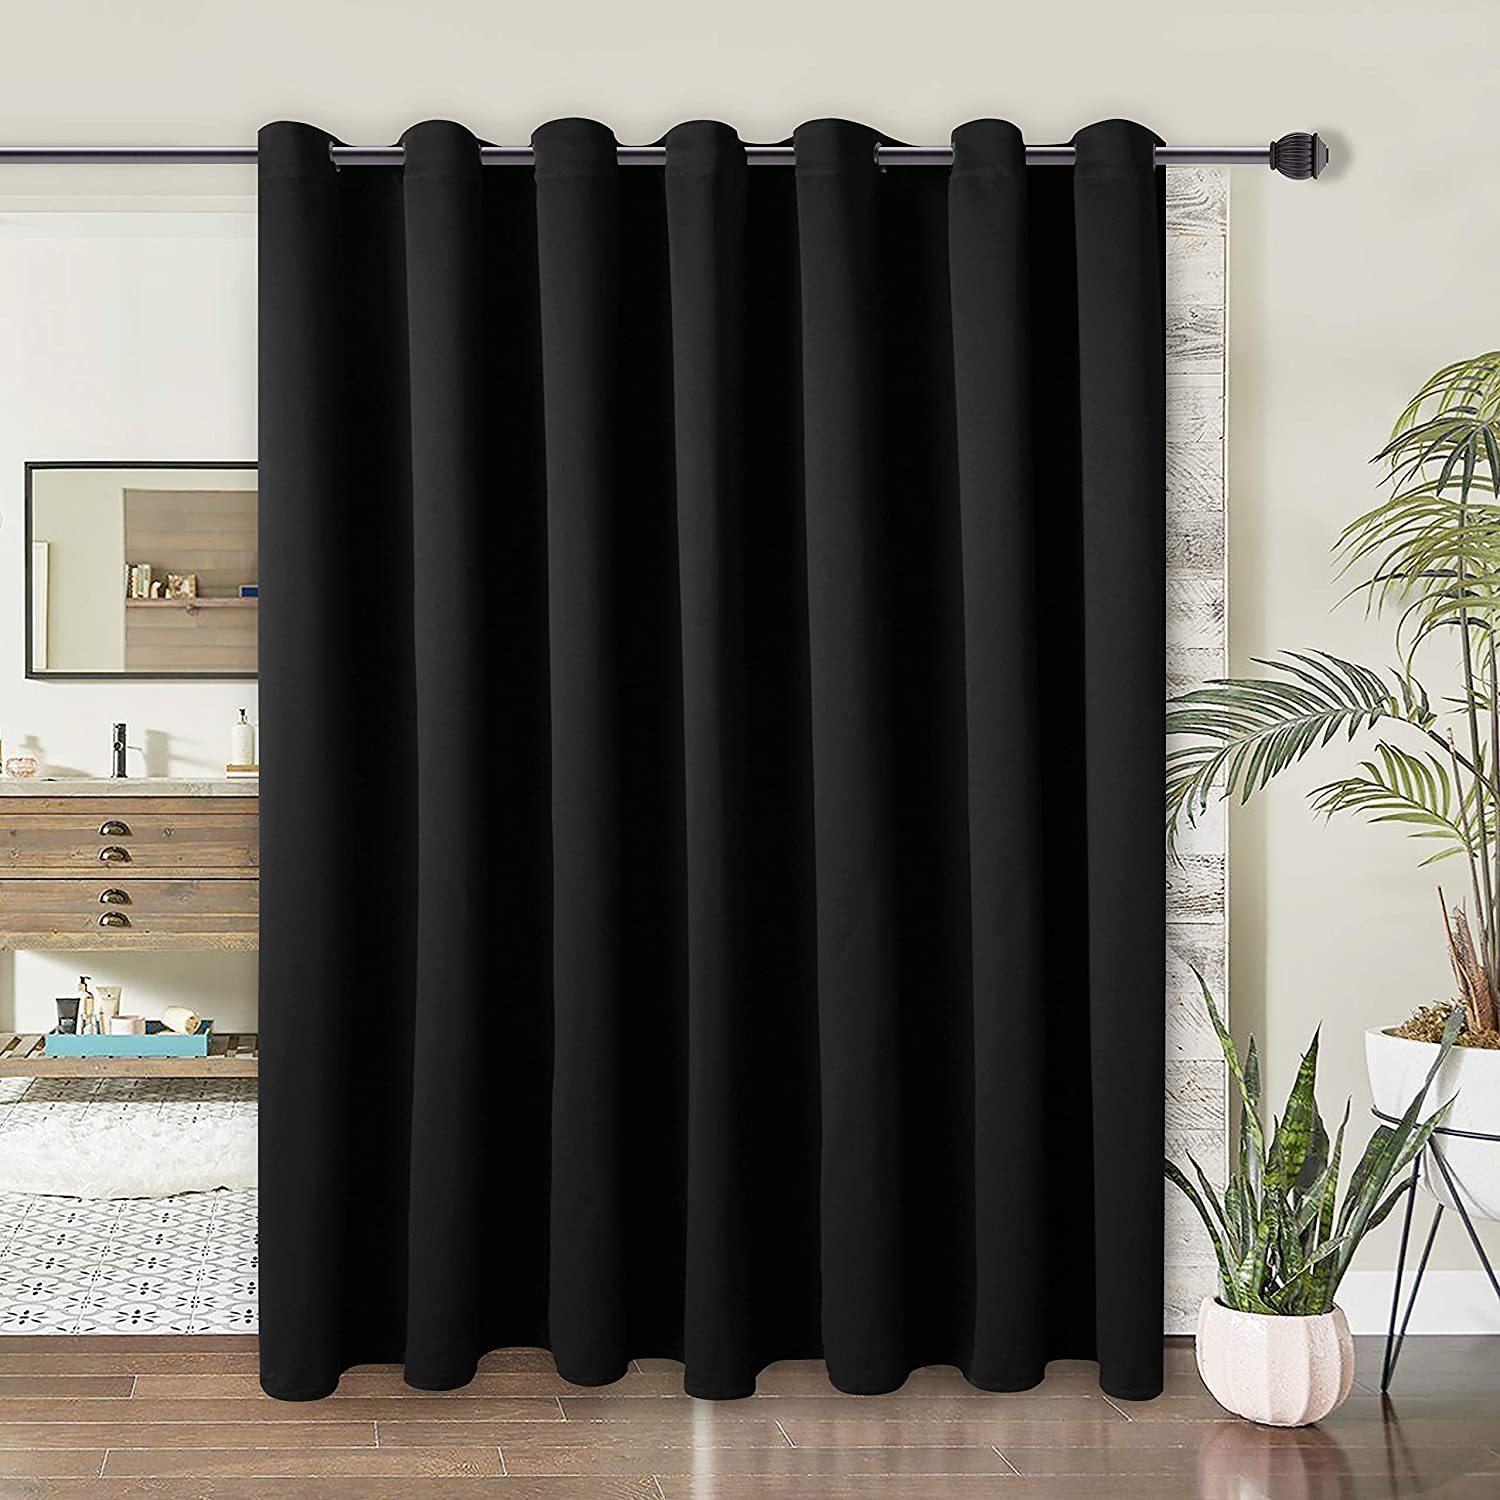 WONTEX Room Divider Curtain - Privacy Blackout Curtains for Bedroom Partition, Living Room and Shared Office, Thermal Insulated Grommet Curtain Panel for Sliding Door, 10ft Wide x 9ft Long, Black